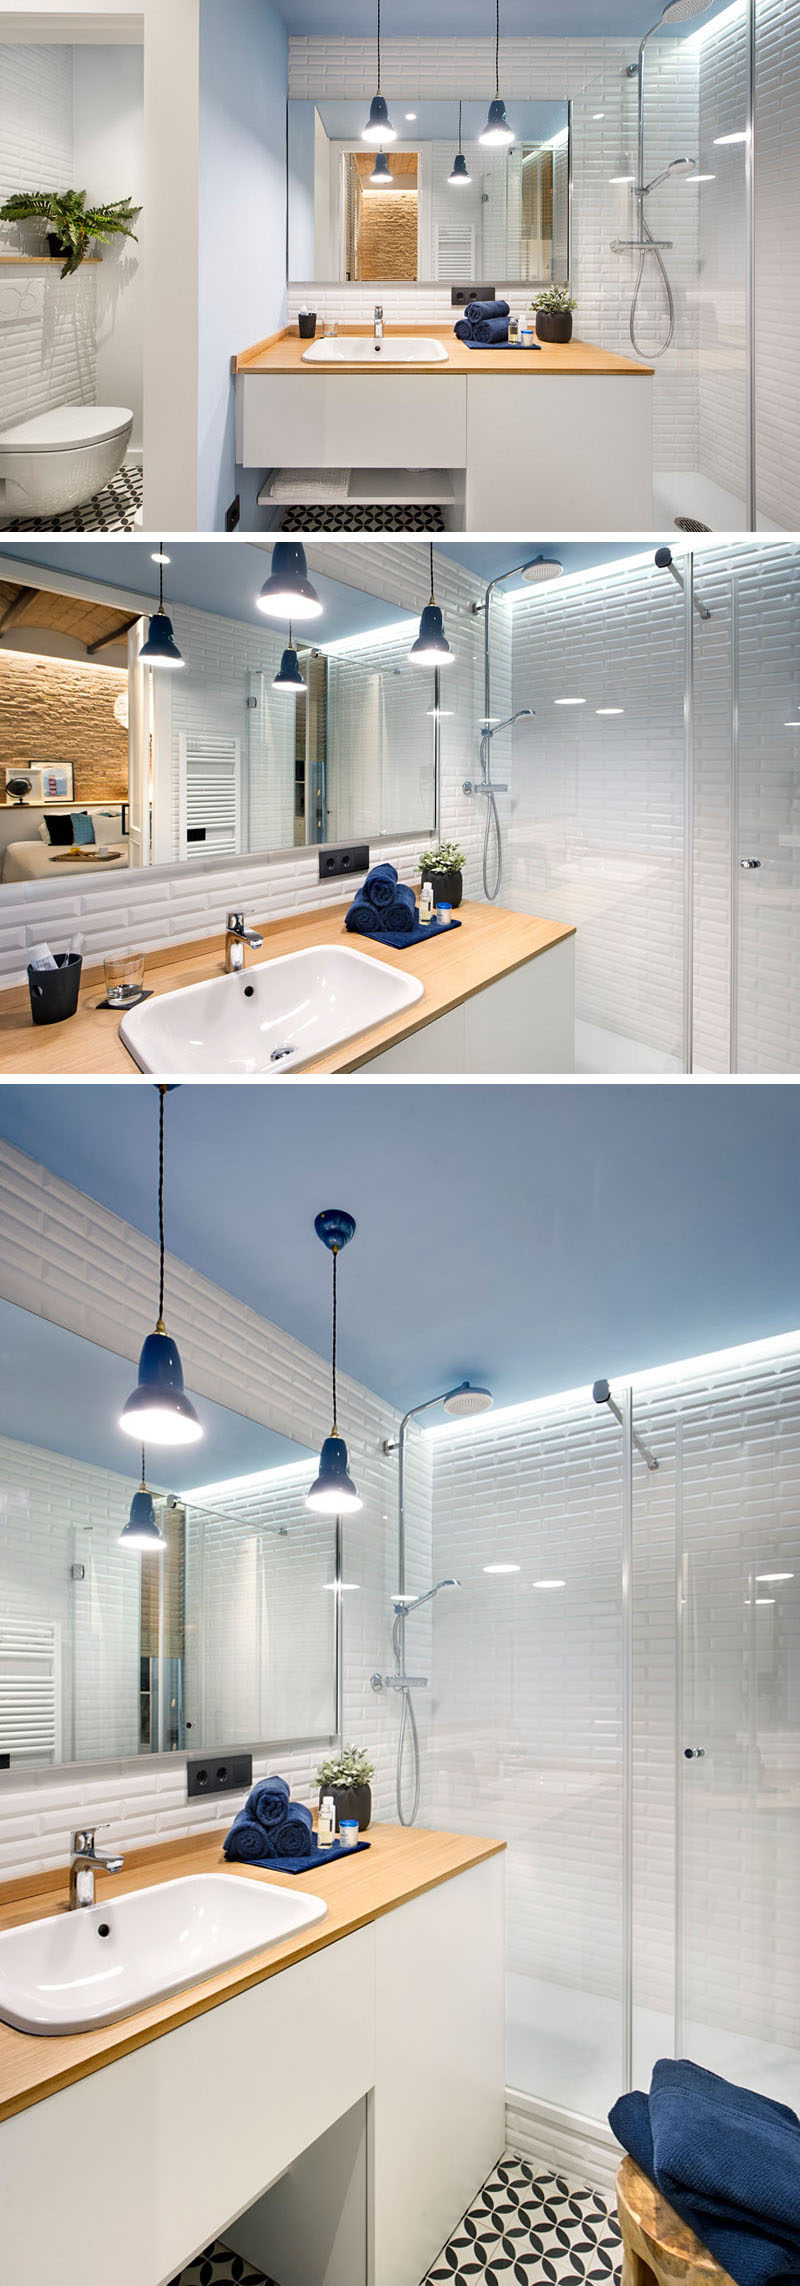 In this small modern bathroom you'll find white tiles and cabinetry, light blue walls and ceiling, and a wood countertop matches the palette of the rest of the apartment. Hanging pendant lights above the sink brighten the space and make it more inviting and plants in the bathroom create a natural vibe and bring a touch of life into the space. The shower is separated from the rest of the bathroom with a glass shower surround.